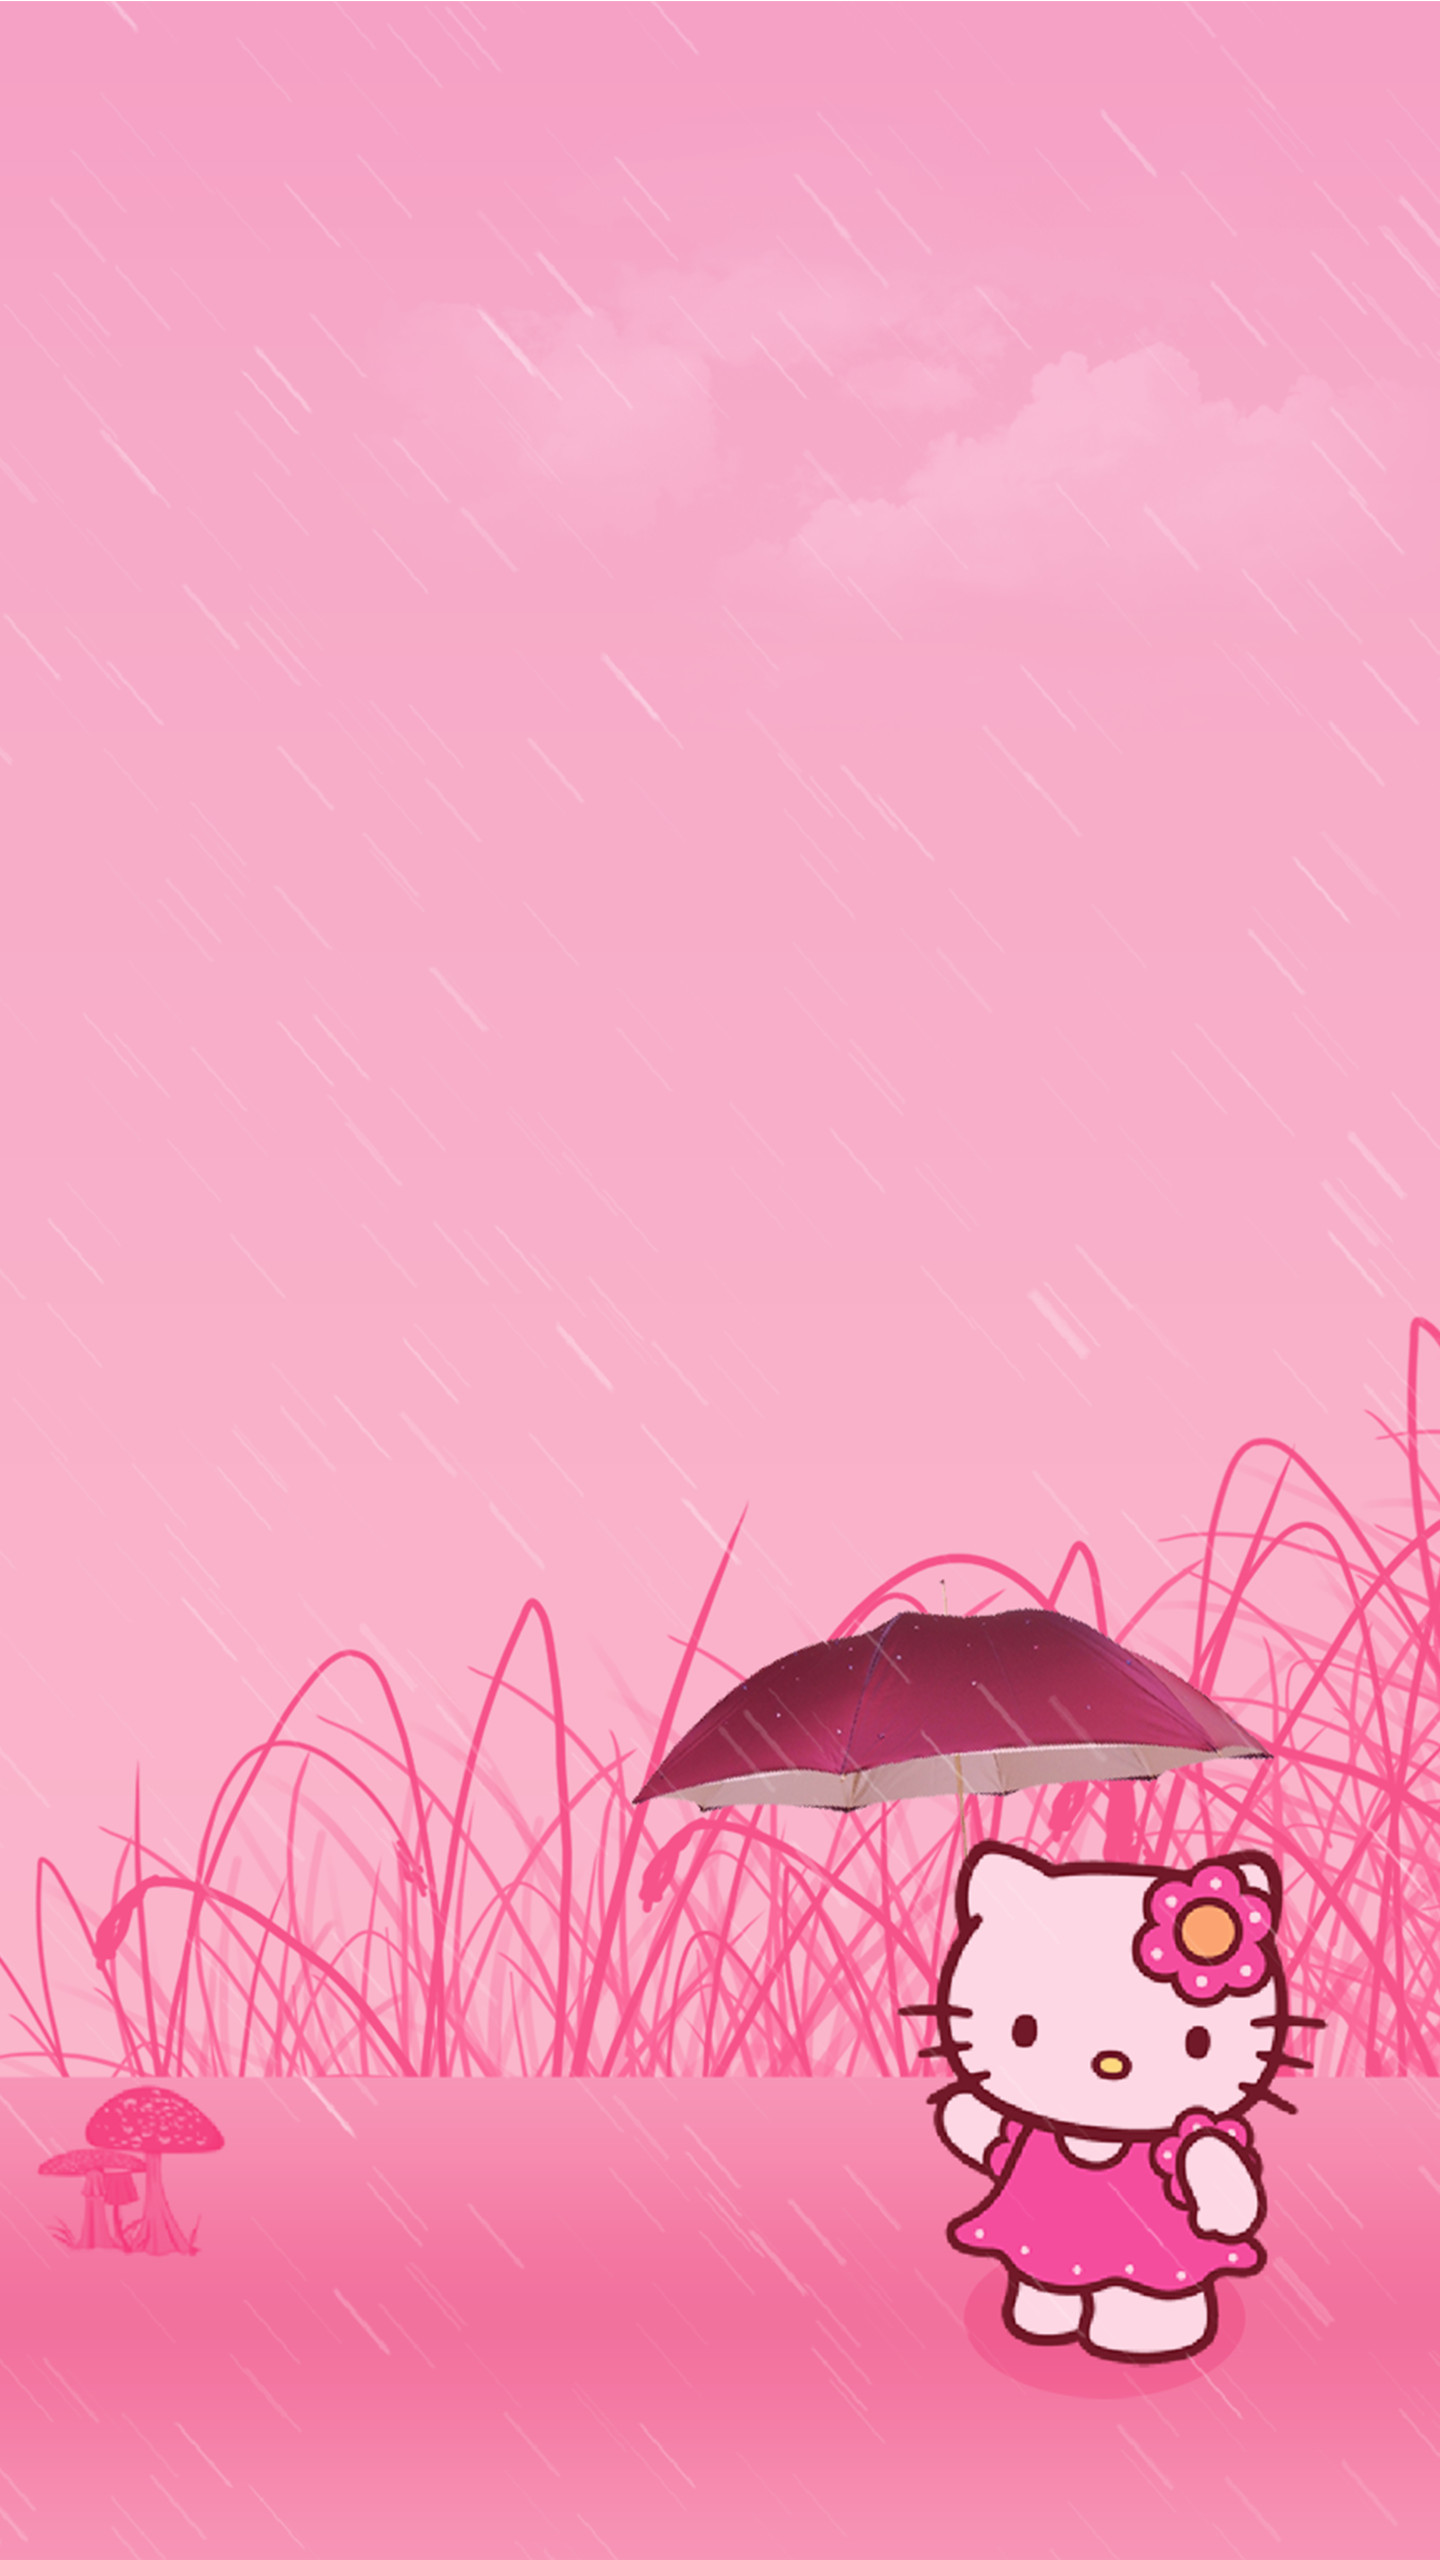 1440x2560 1080x1920 Hello Kitty Pictures, Hello Kitty Wallpaper, Iphone Wallpapers,  Kimonos, Papo, Sanrio Hello Kitty, Kawaii, Backgrounds, Wallpapers